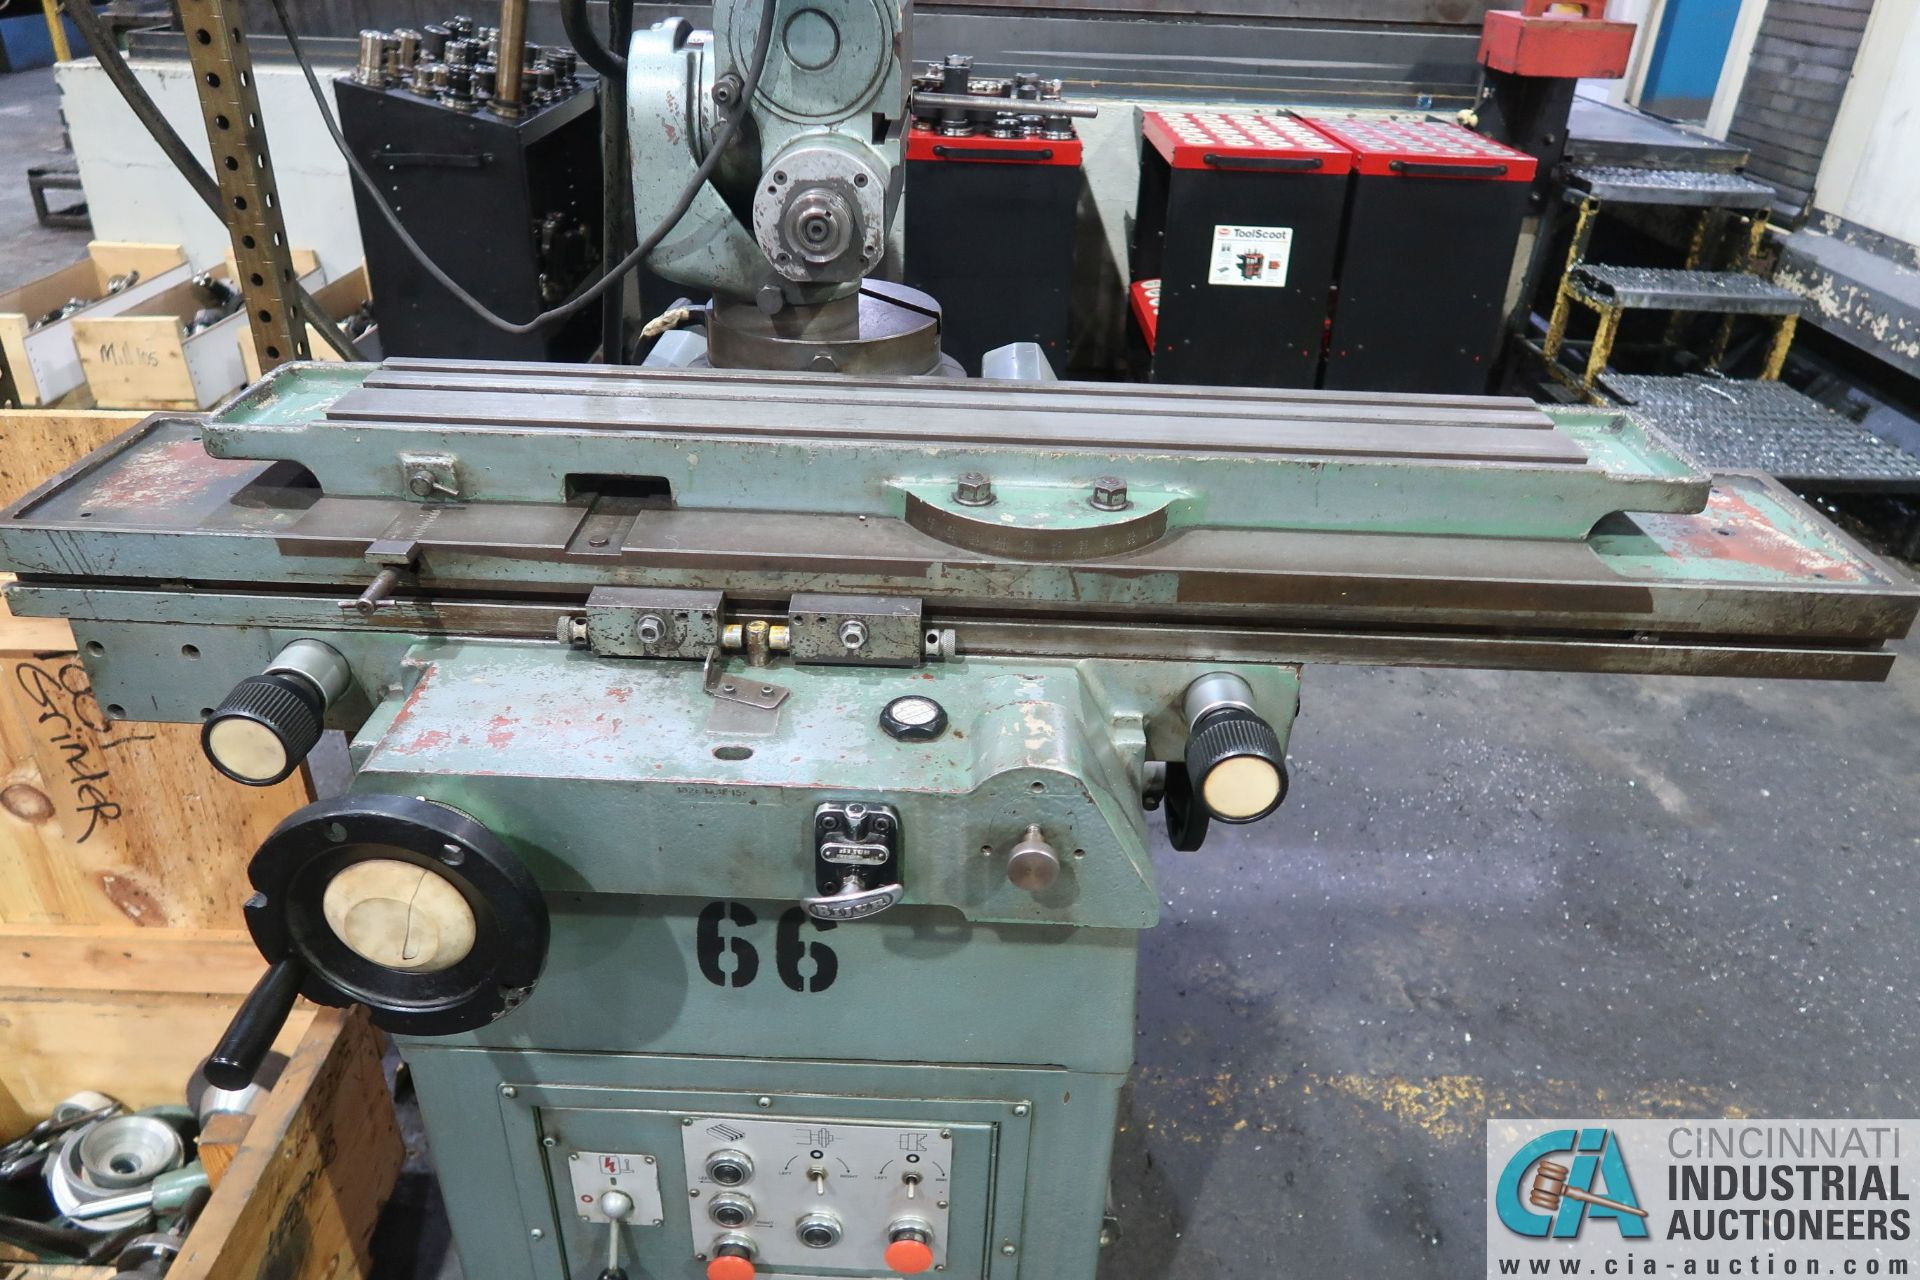 CINCINNATI TYPE MT TOOL GRINDER; S/N 1D2F1ABF-15, WITH (1) WOOD CRATE MISCELLANEOUS FIXTURES (NEW - Image 6 of 11